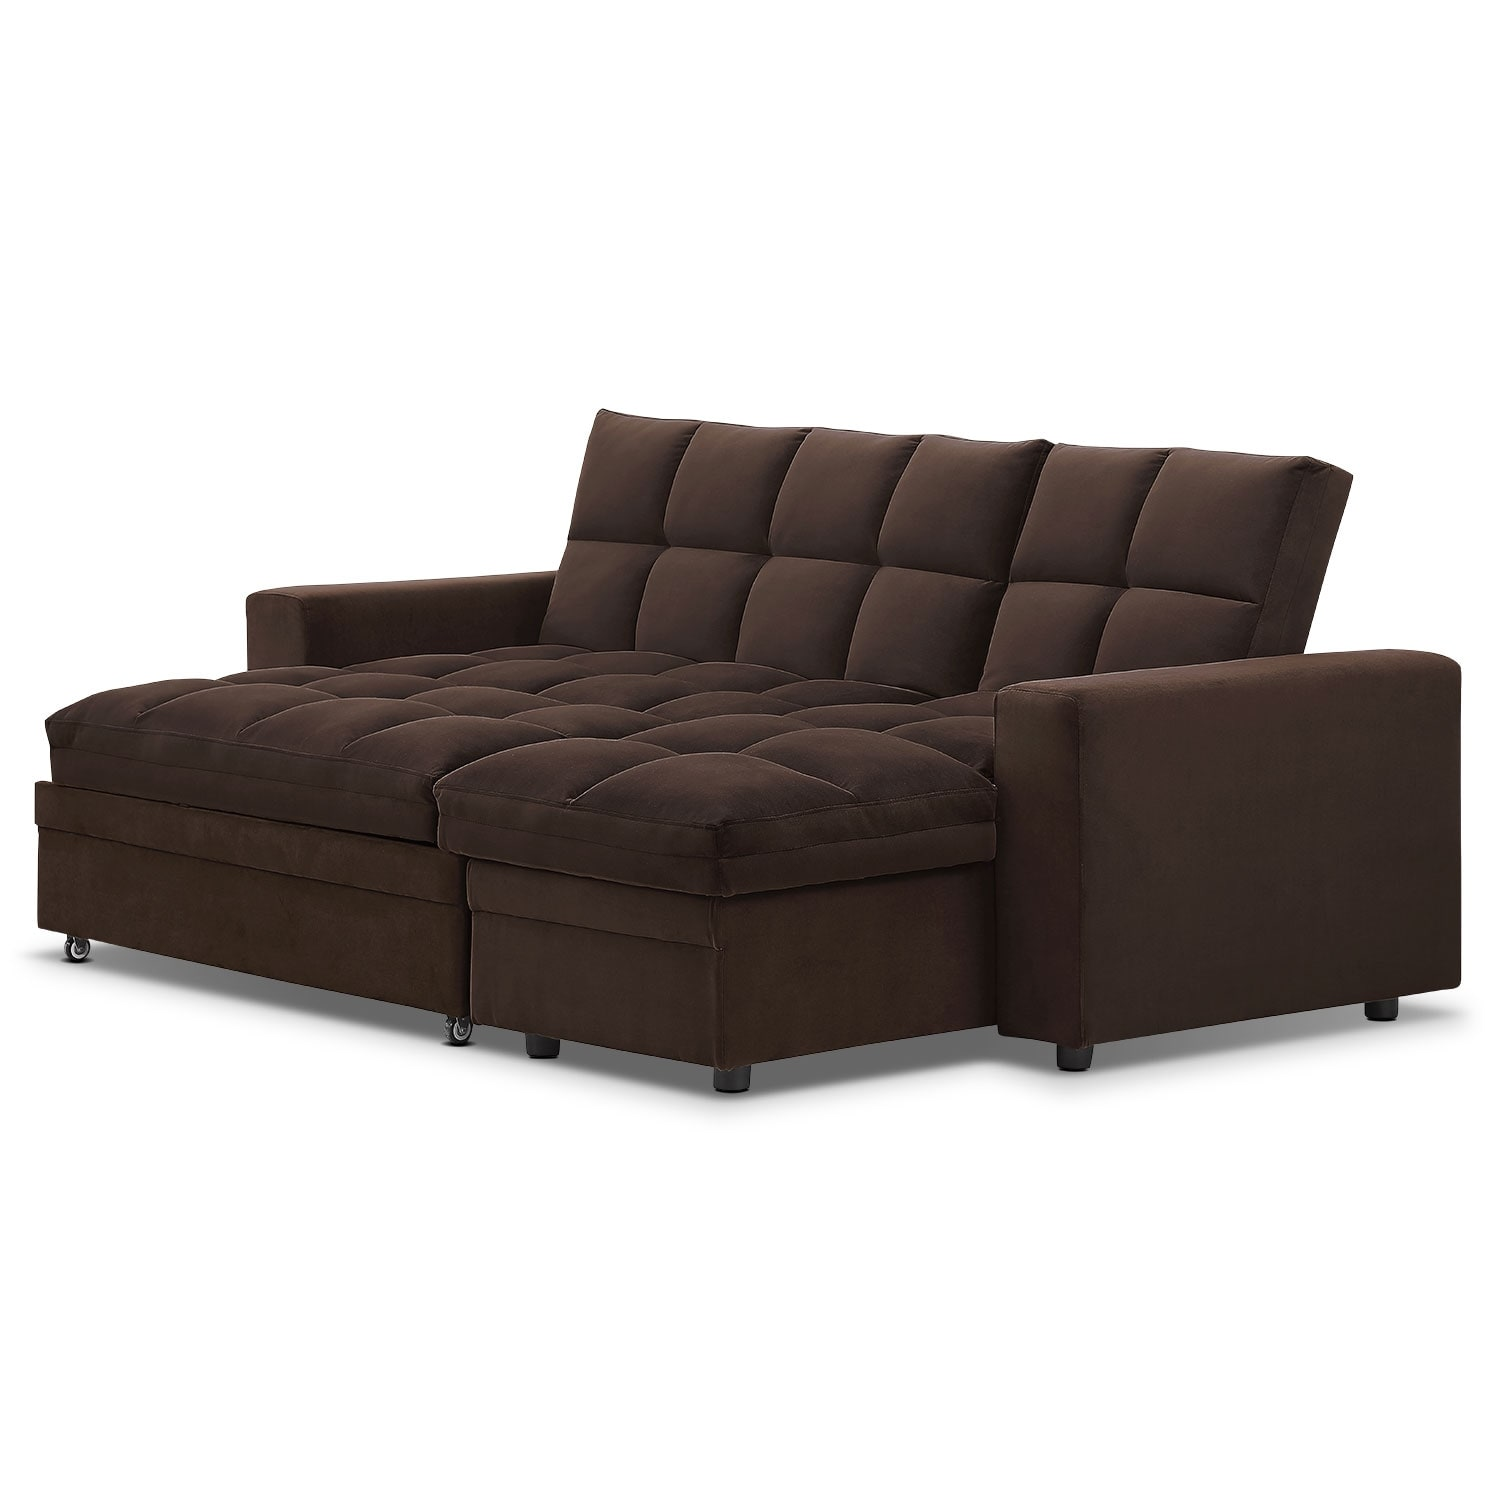 Furniture Sofa Bed Of Metro Chaise Sofa Bed With Storage Brown Value City